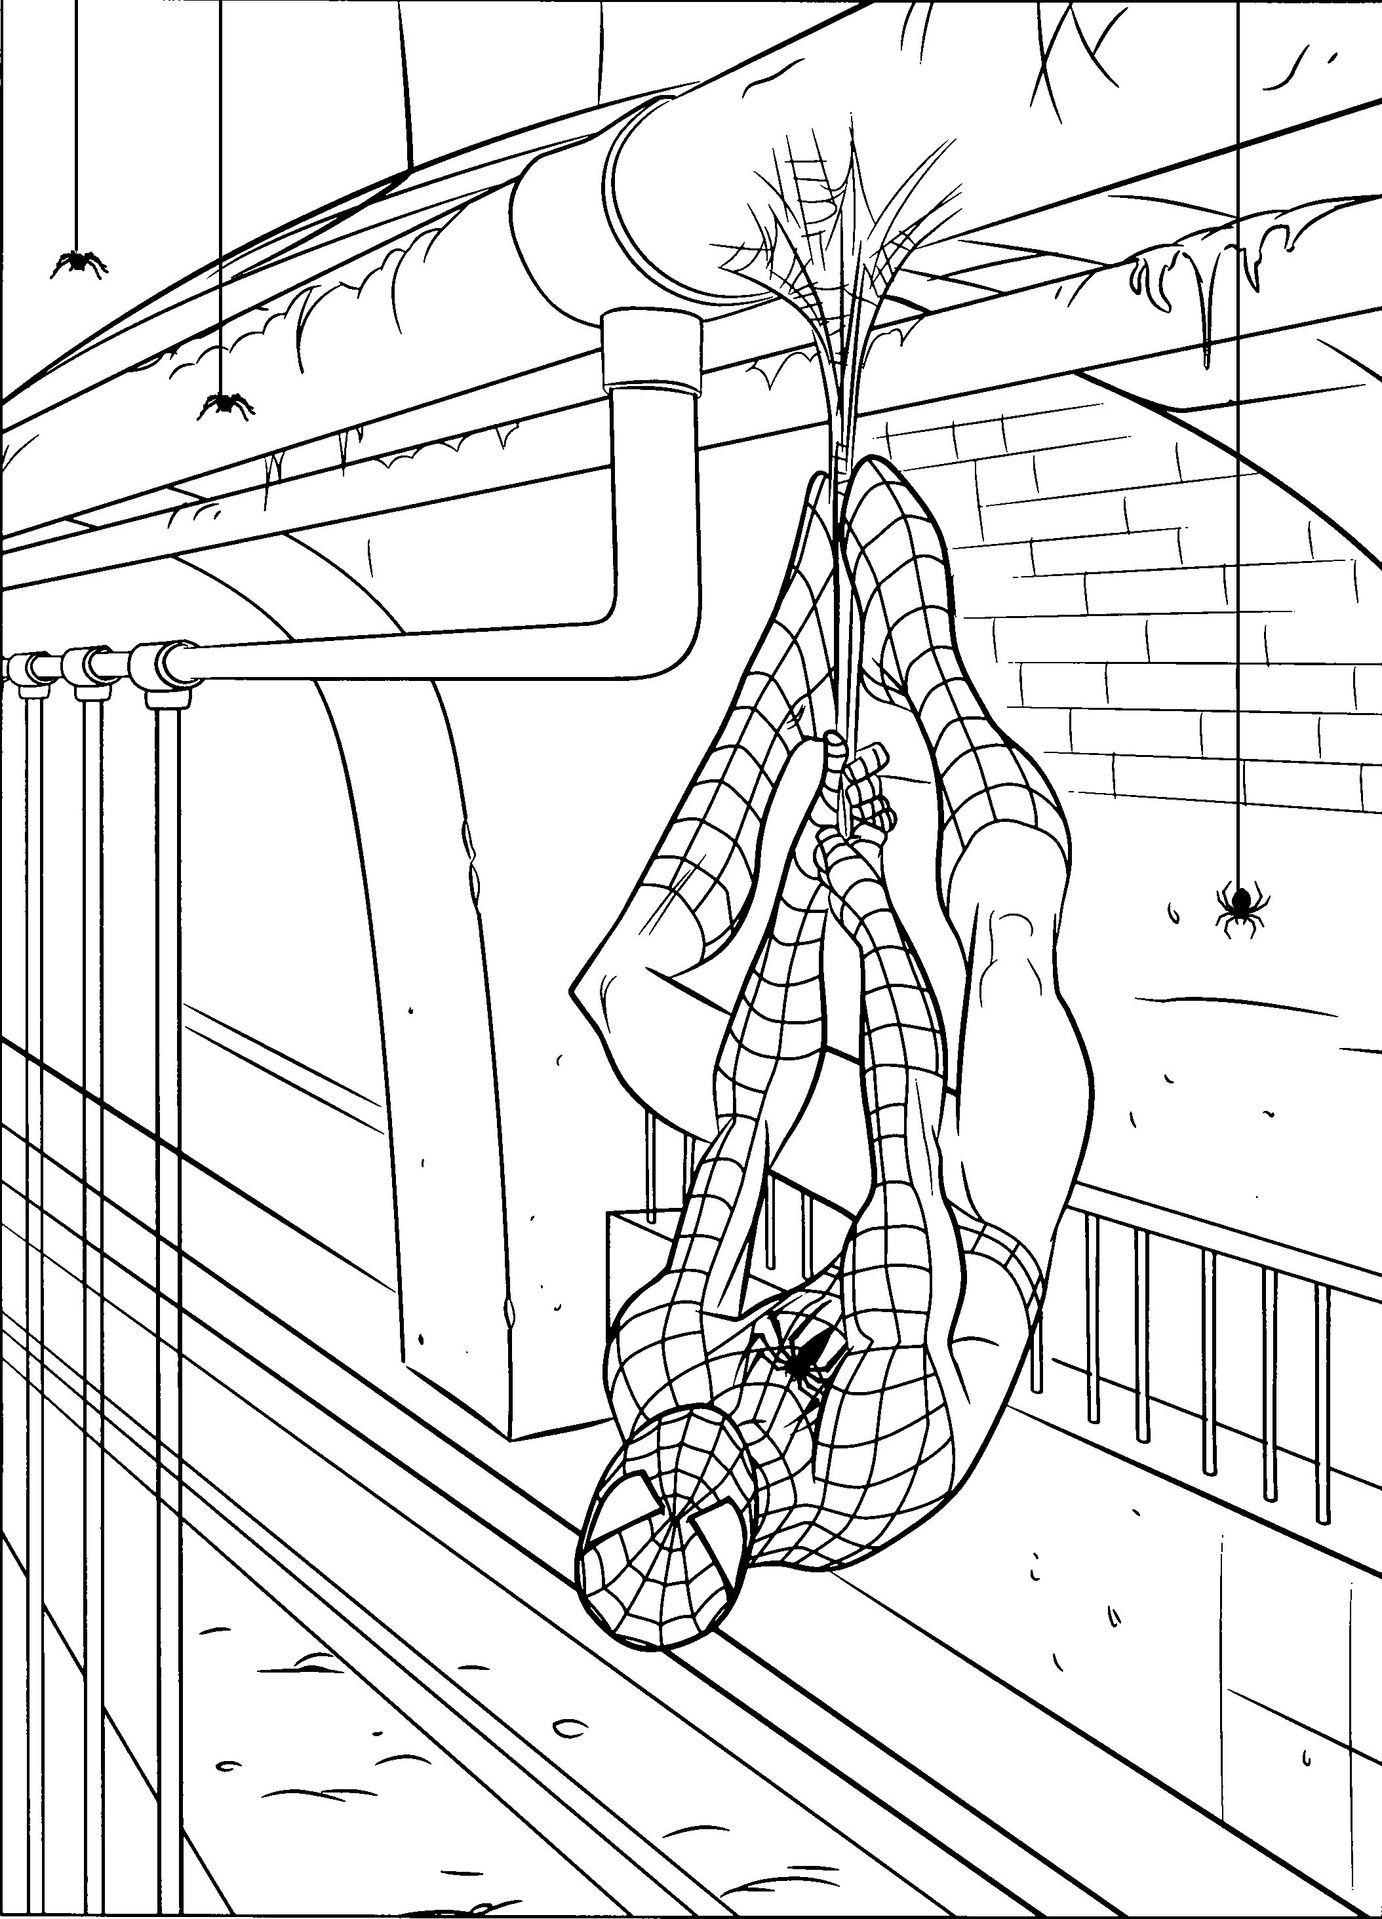 COLORING PICTURES PAGES .COM | Coloring pages | Pinterest